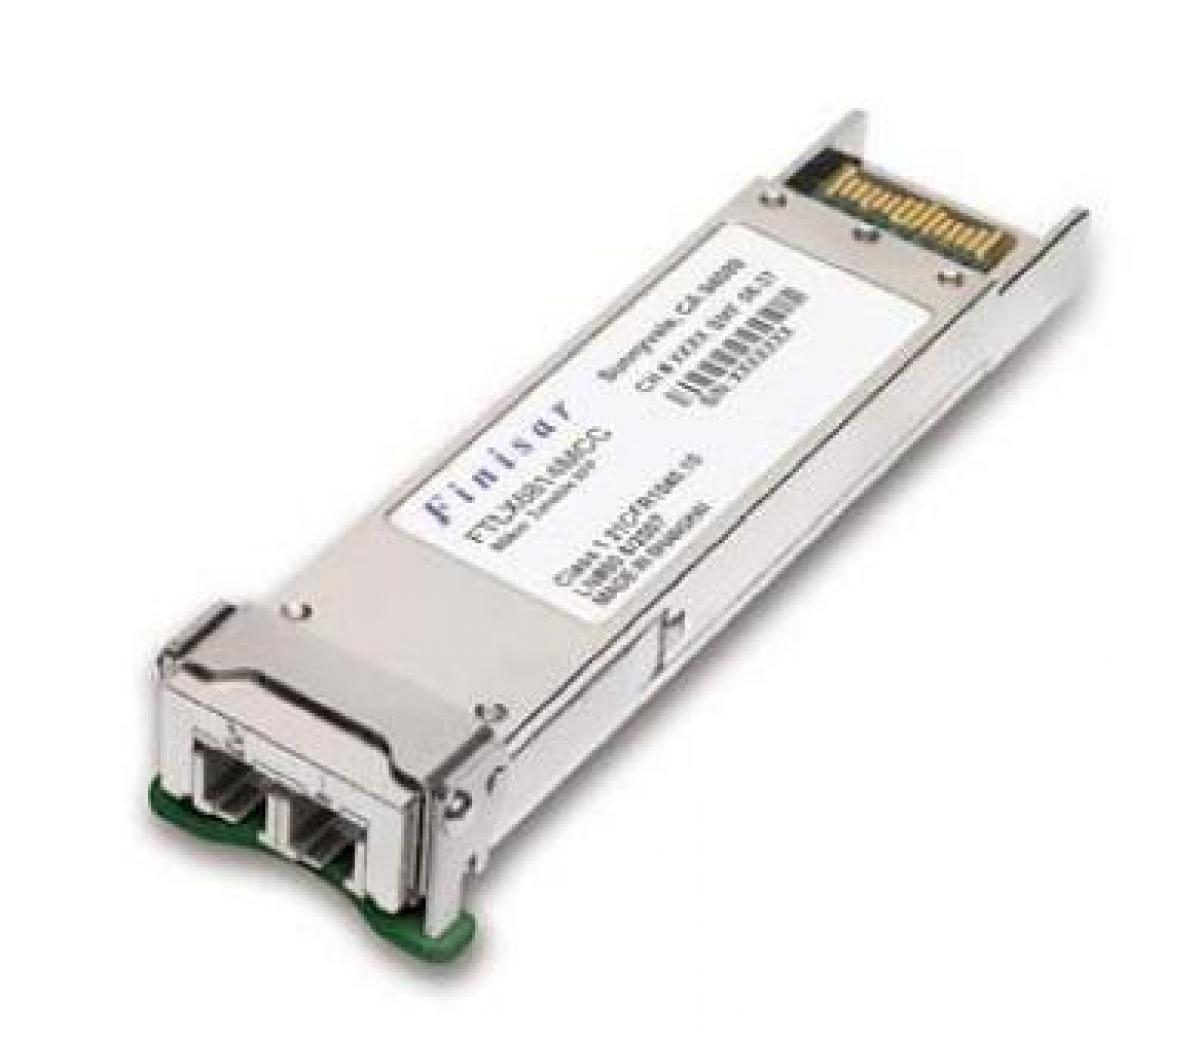 FTLX6824MNC Finisar 10G Tunable DWDM T-XFP Transceiver